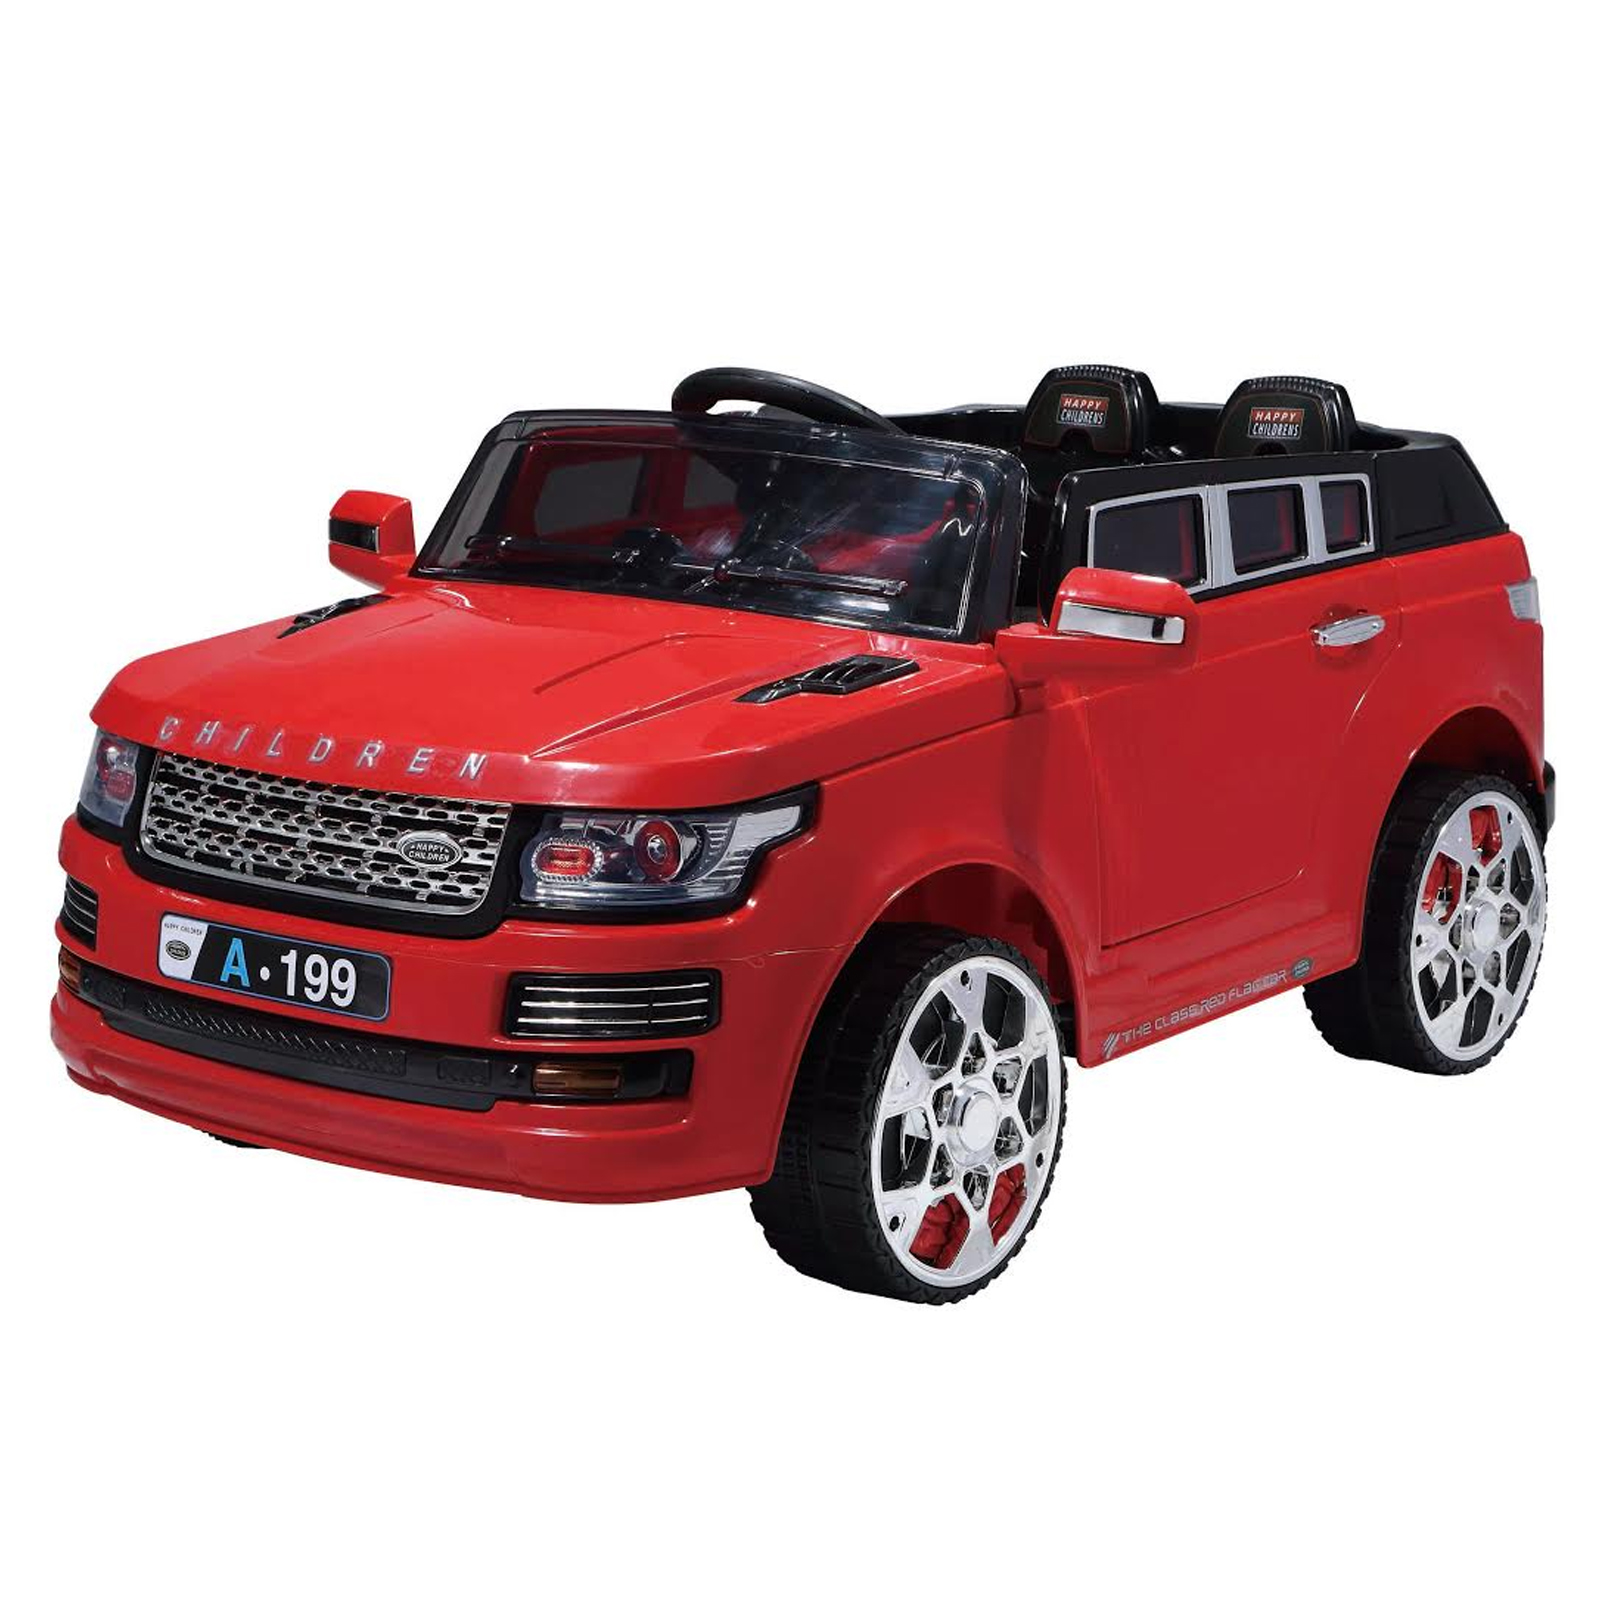 Luxury SUV 12V Kids Battery Powered Ride On Car in Red